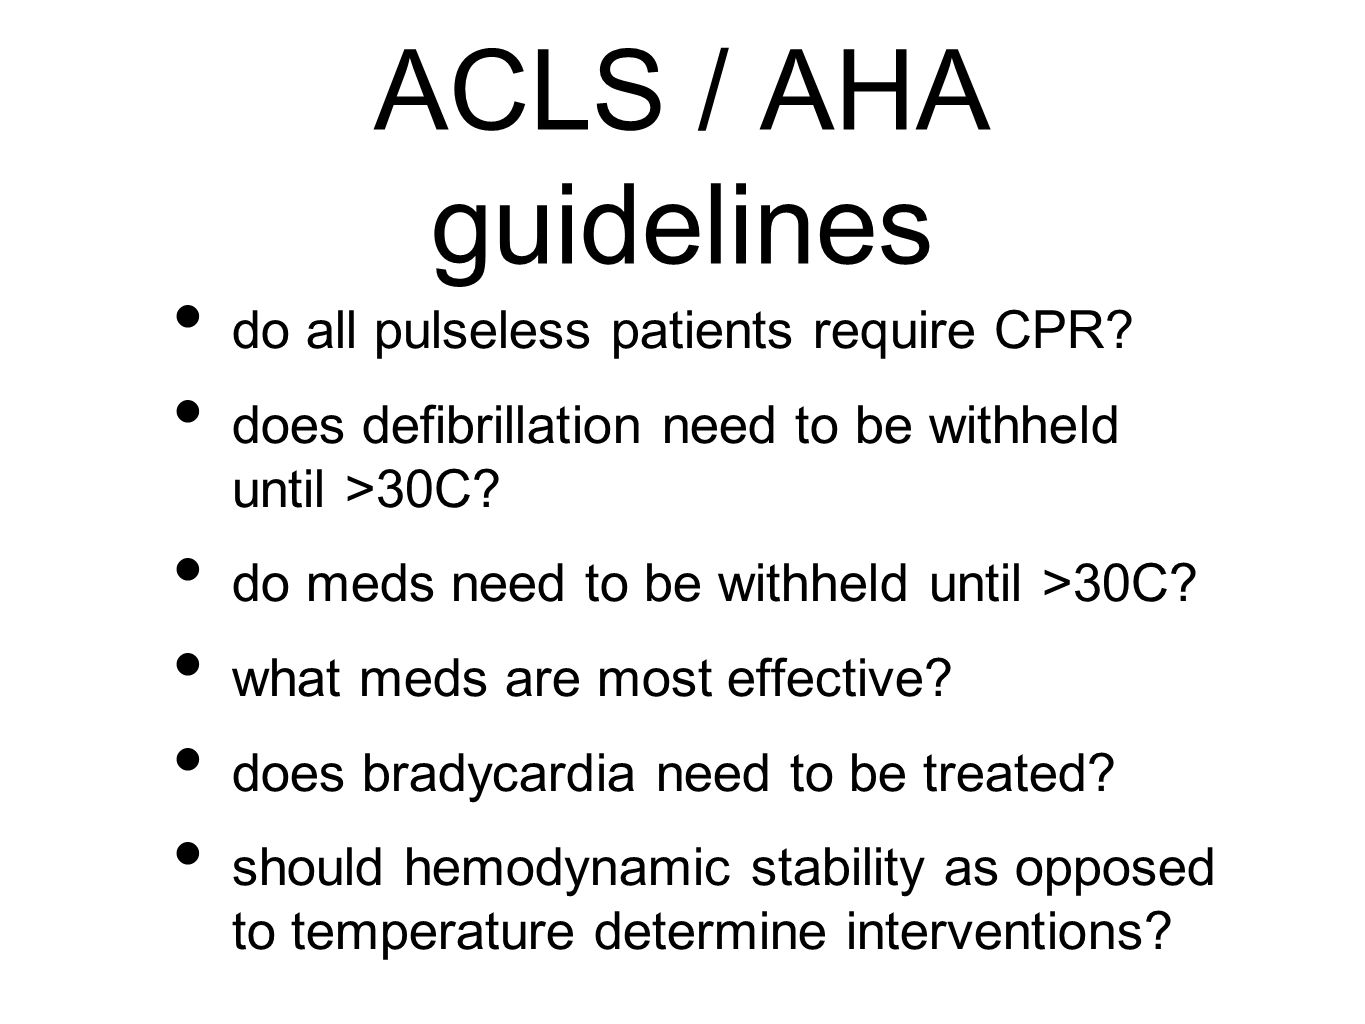 ACLS / AHA guidelines do all pulseless patients require CPR? does defibrillation need to be withheld until >30C? do meds need to be withheld until >30